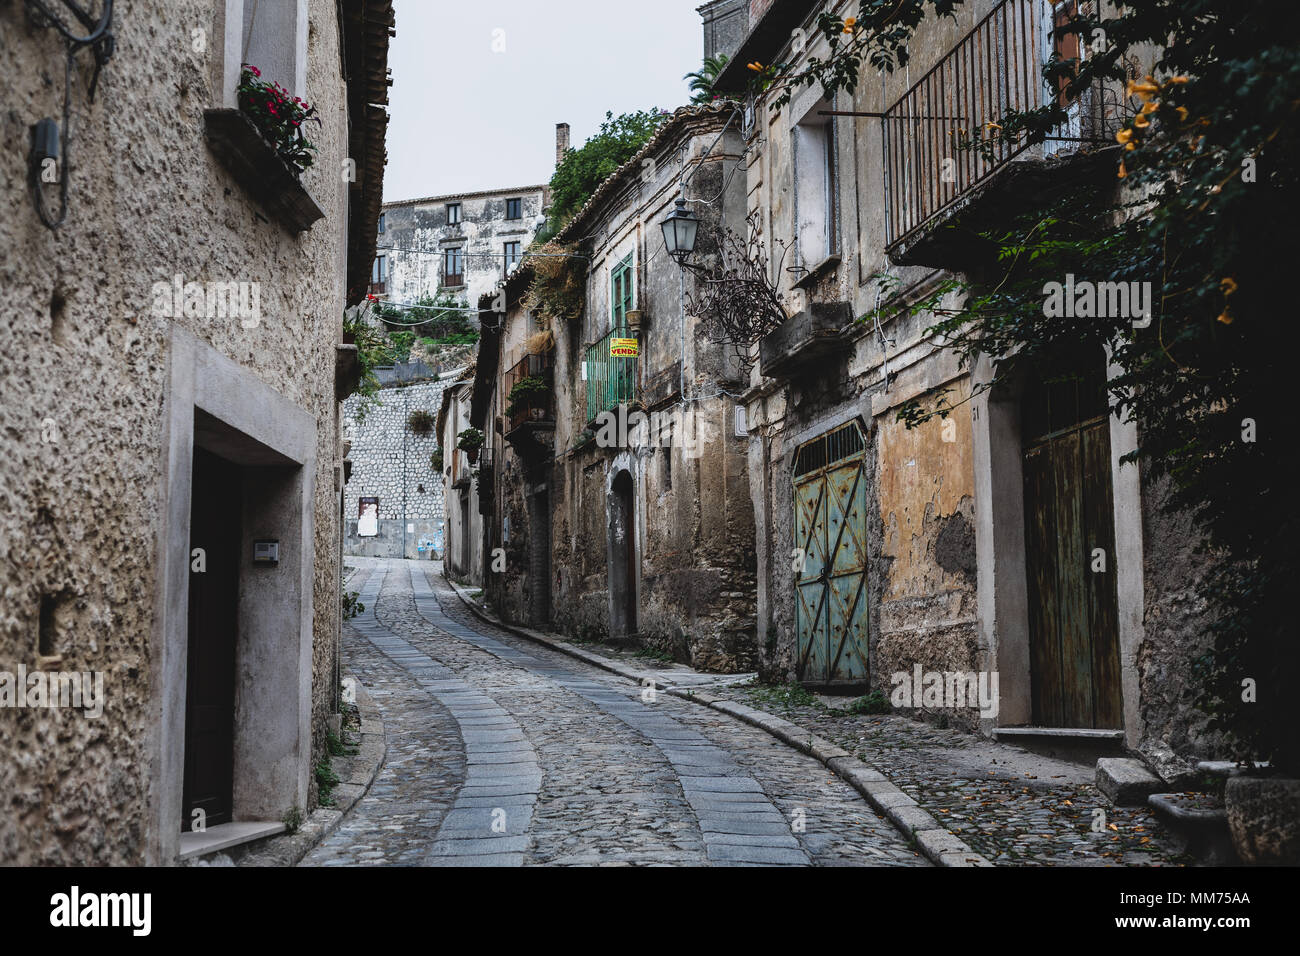 A street in the village of Gerace, Calabria, Italy - Stock Image